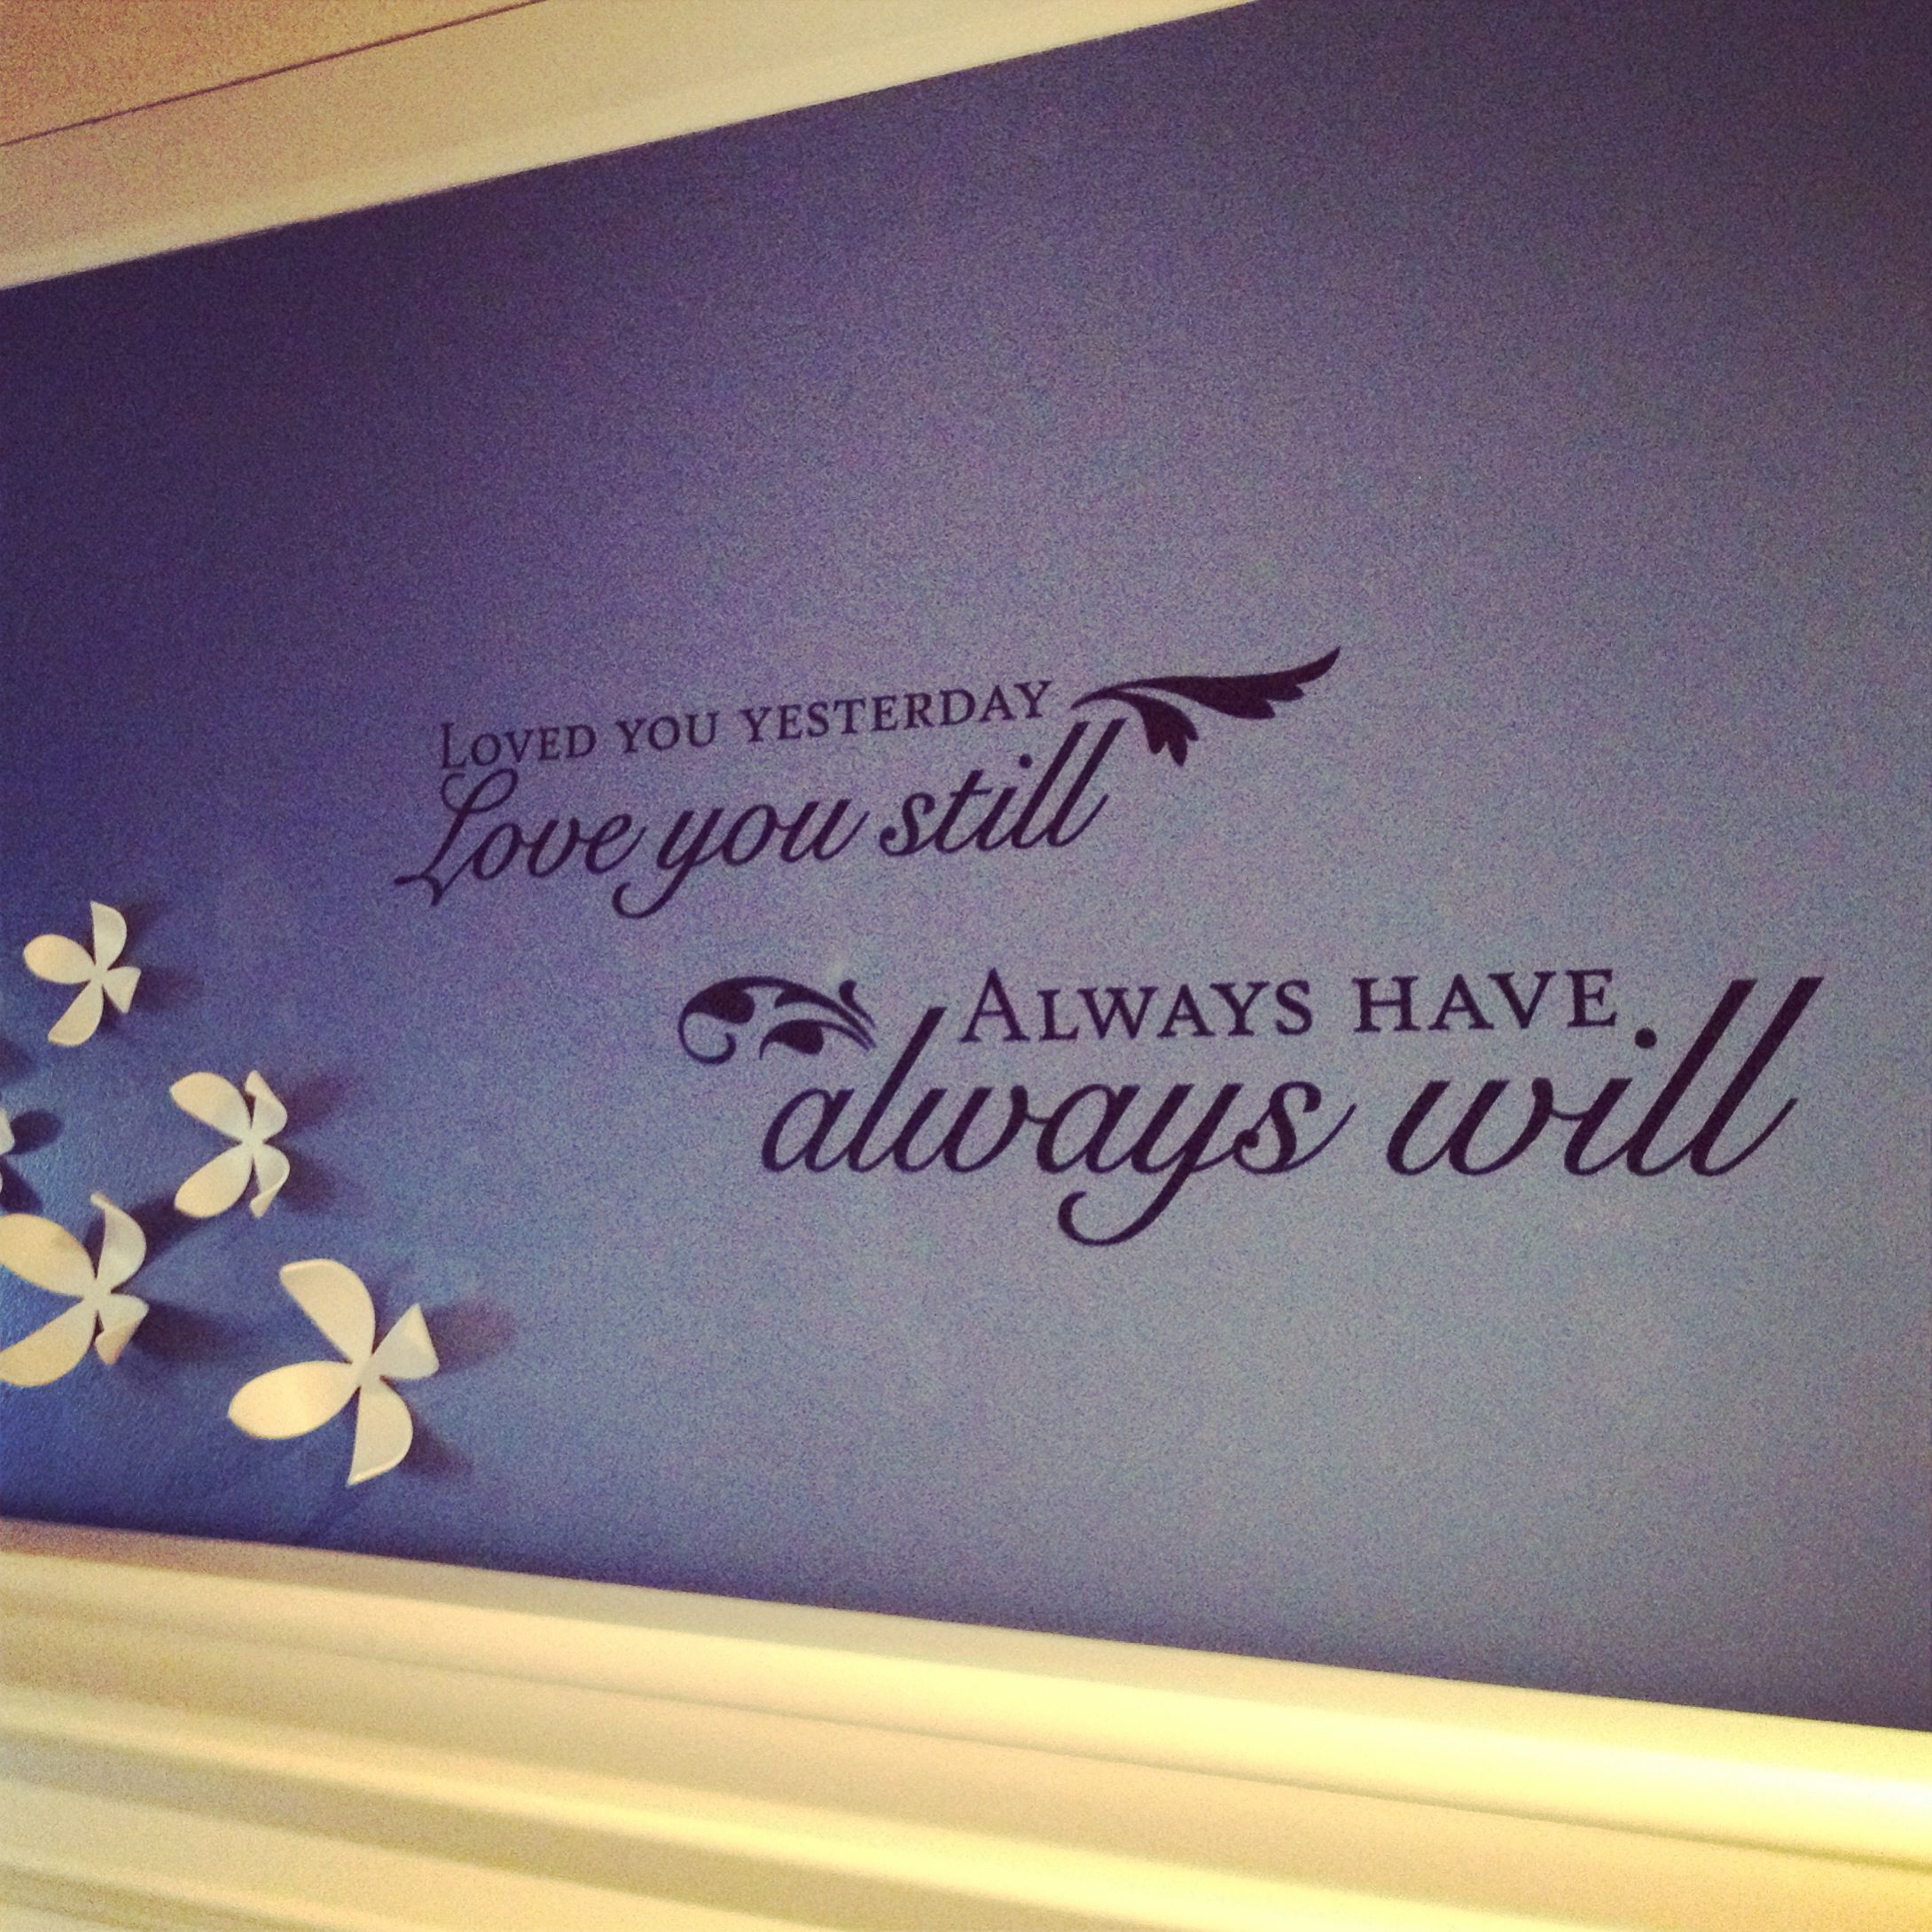 Wall decal from hobby lobby flowers from bed bath and beyond